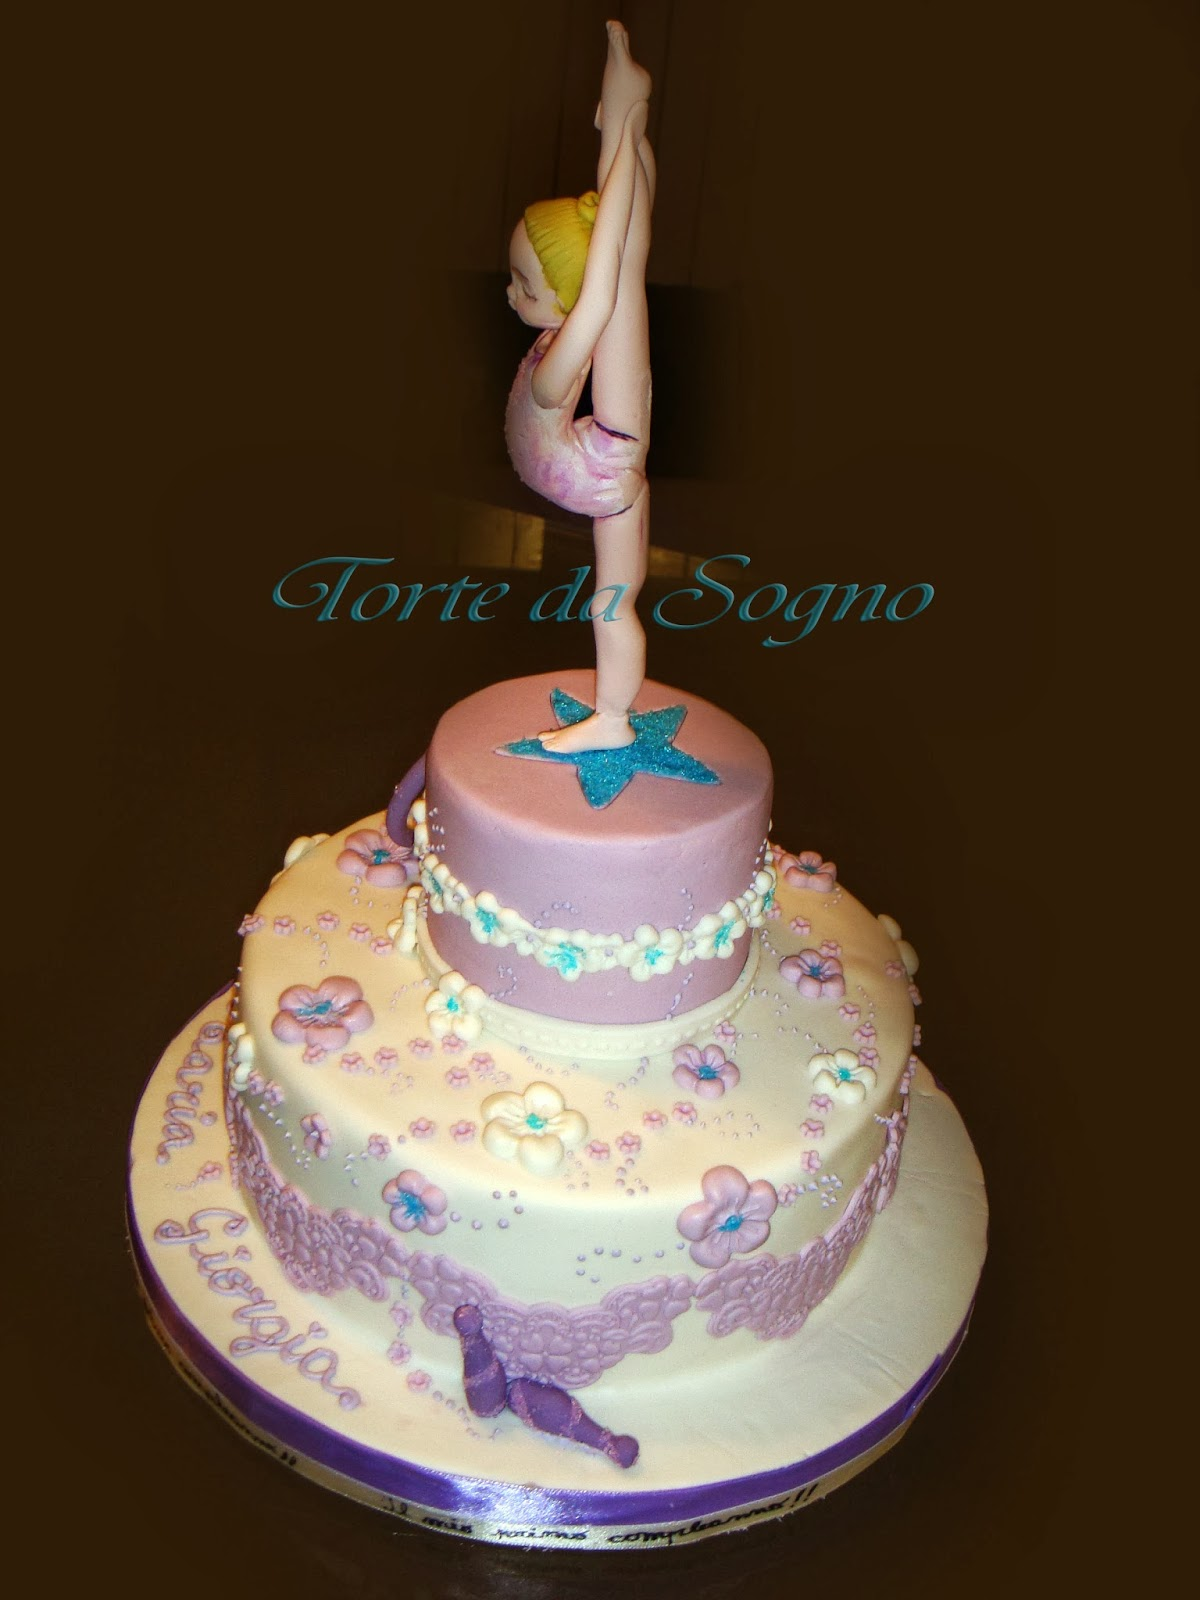 torte da sogno di romina minniti 1 compleanno. Black Bedroom Furniture Sets. Home Design Ideas